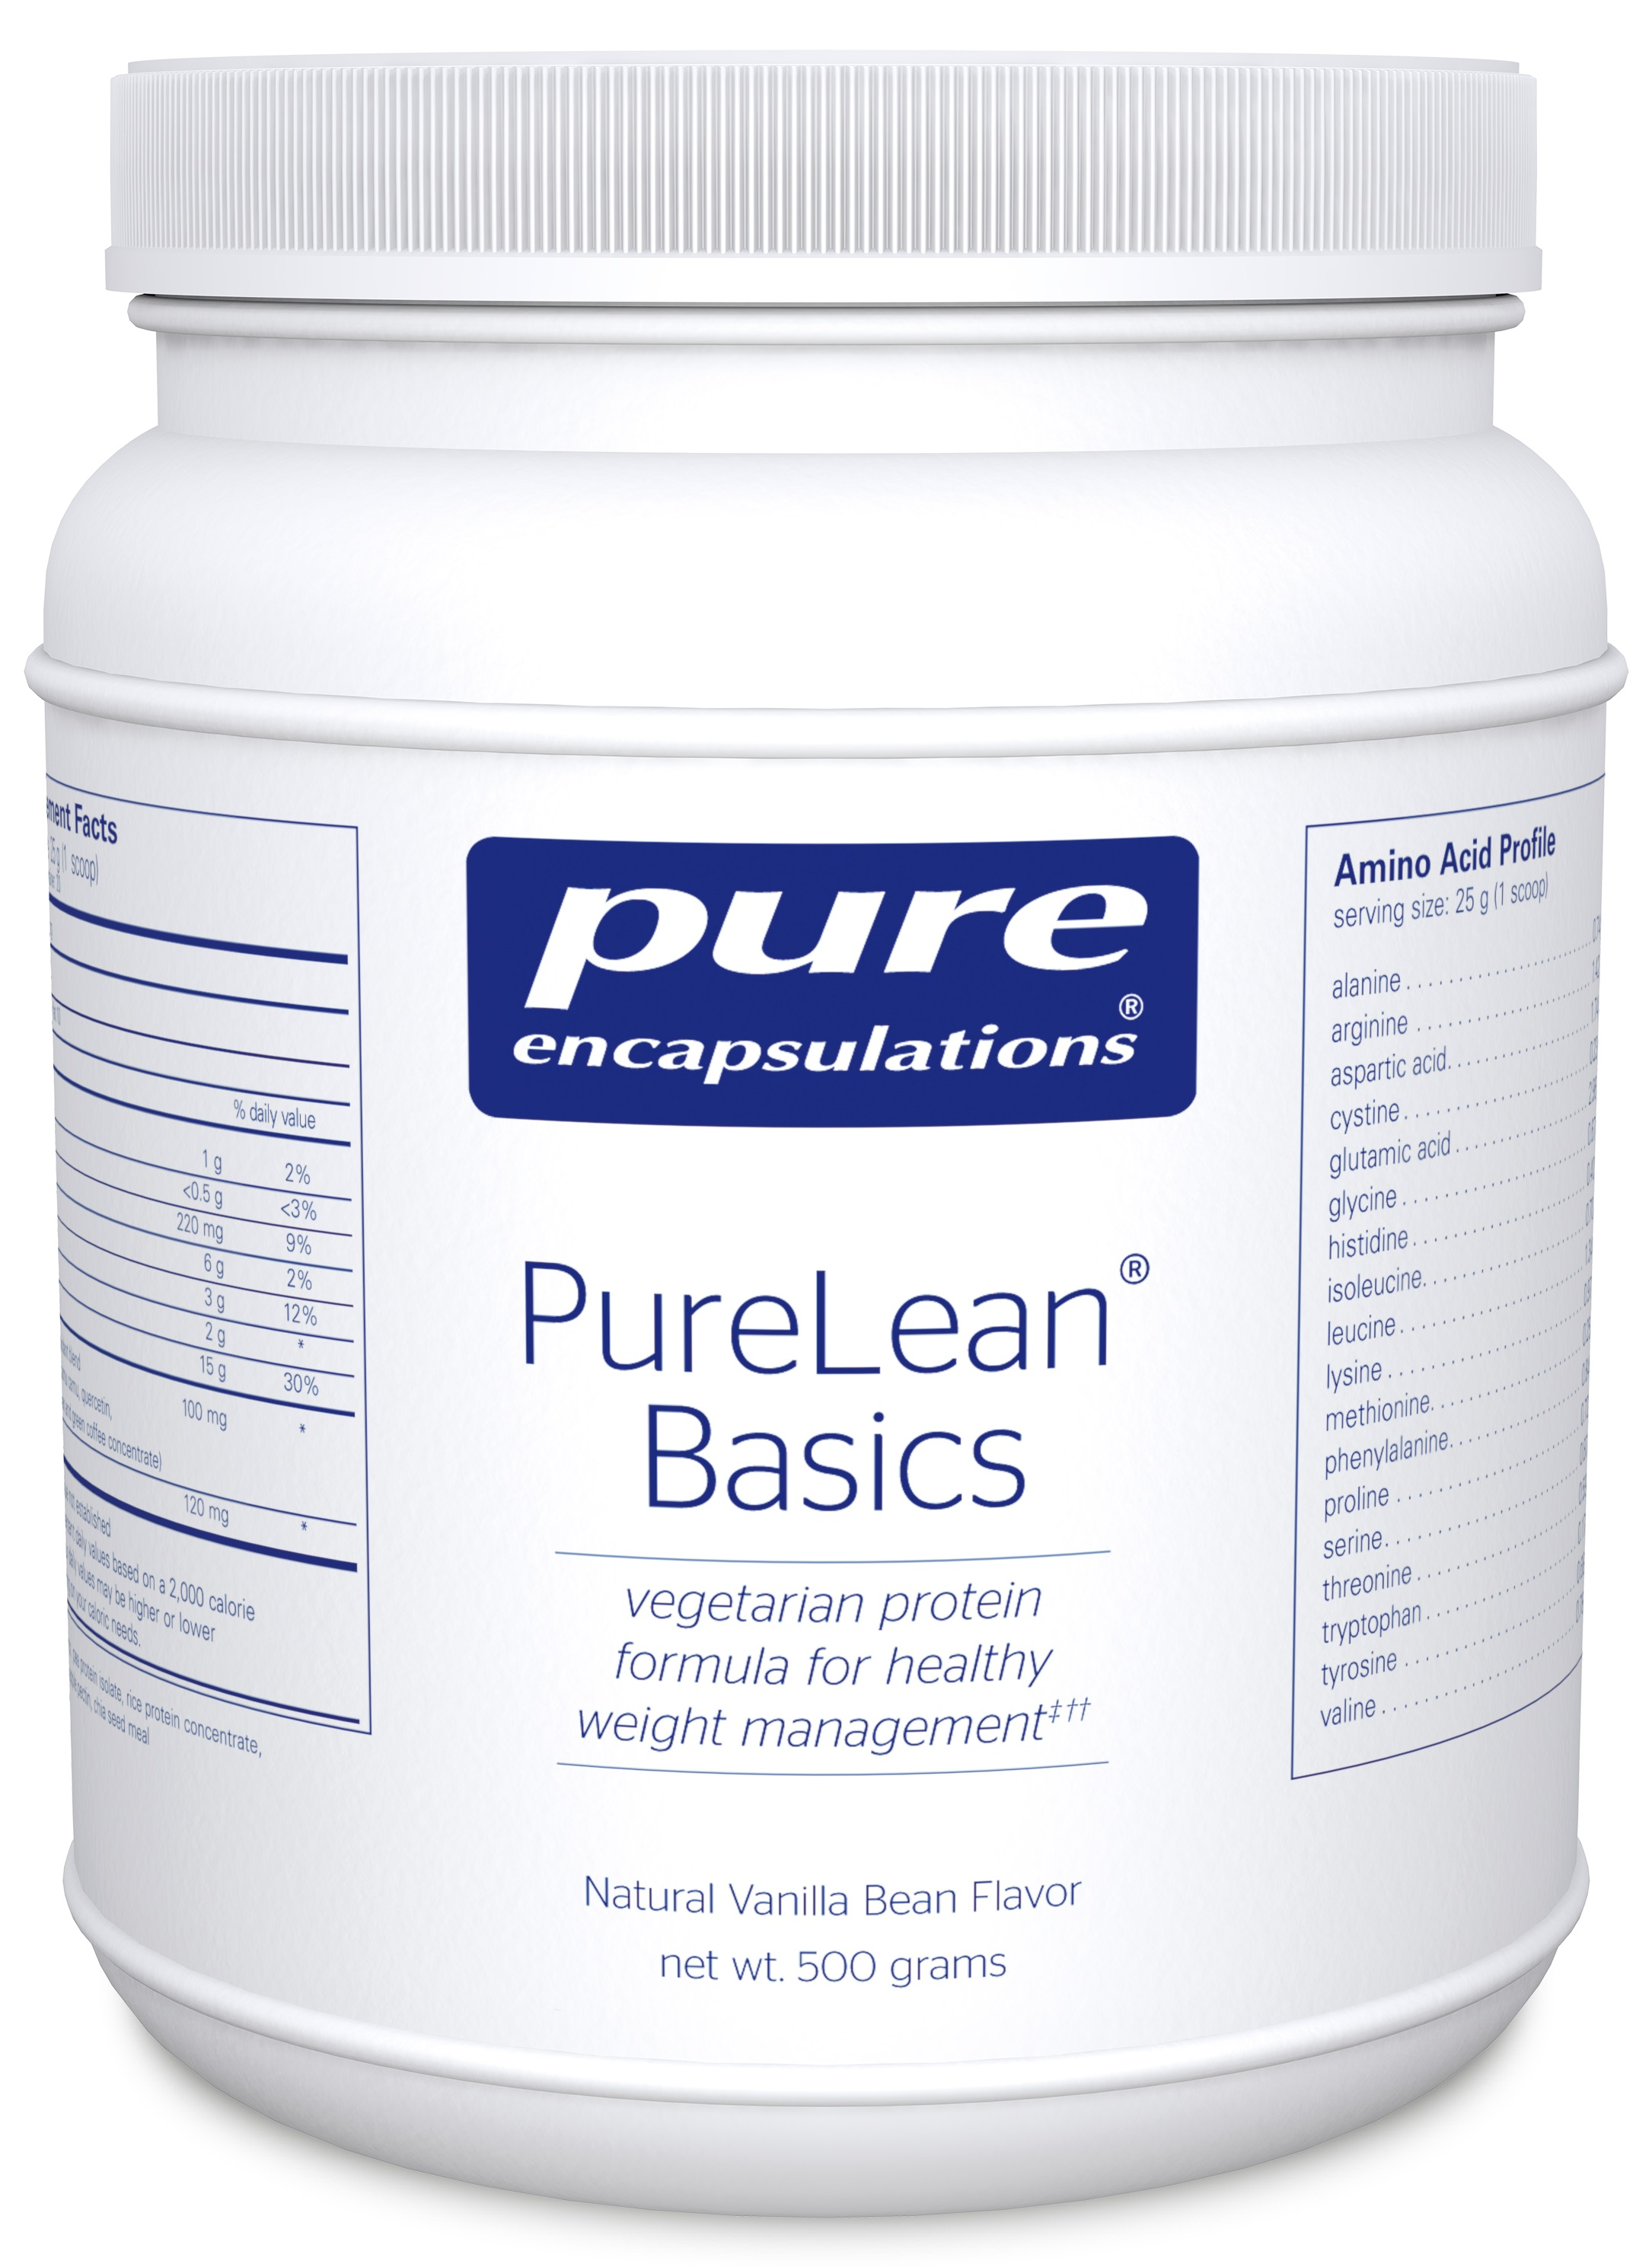 Pure Encapsulations PureLean® Protein Blend Basics Vanilla Bean Flavor (with Stevia)